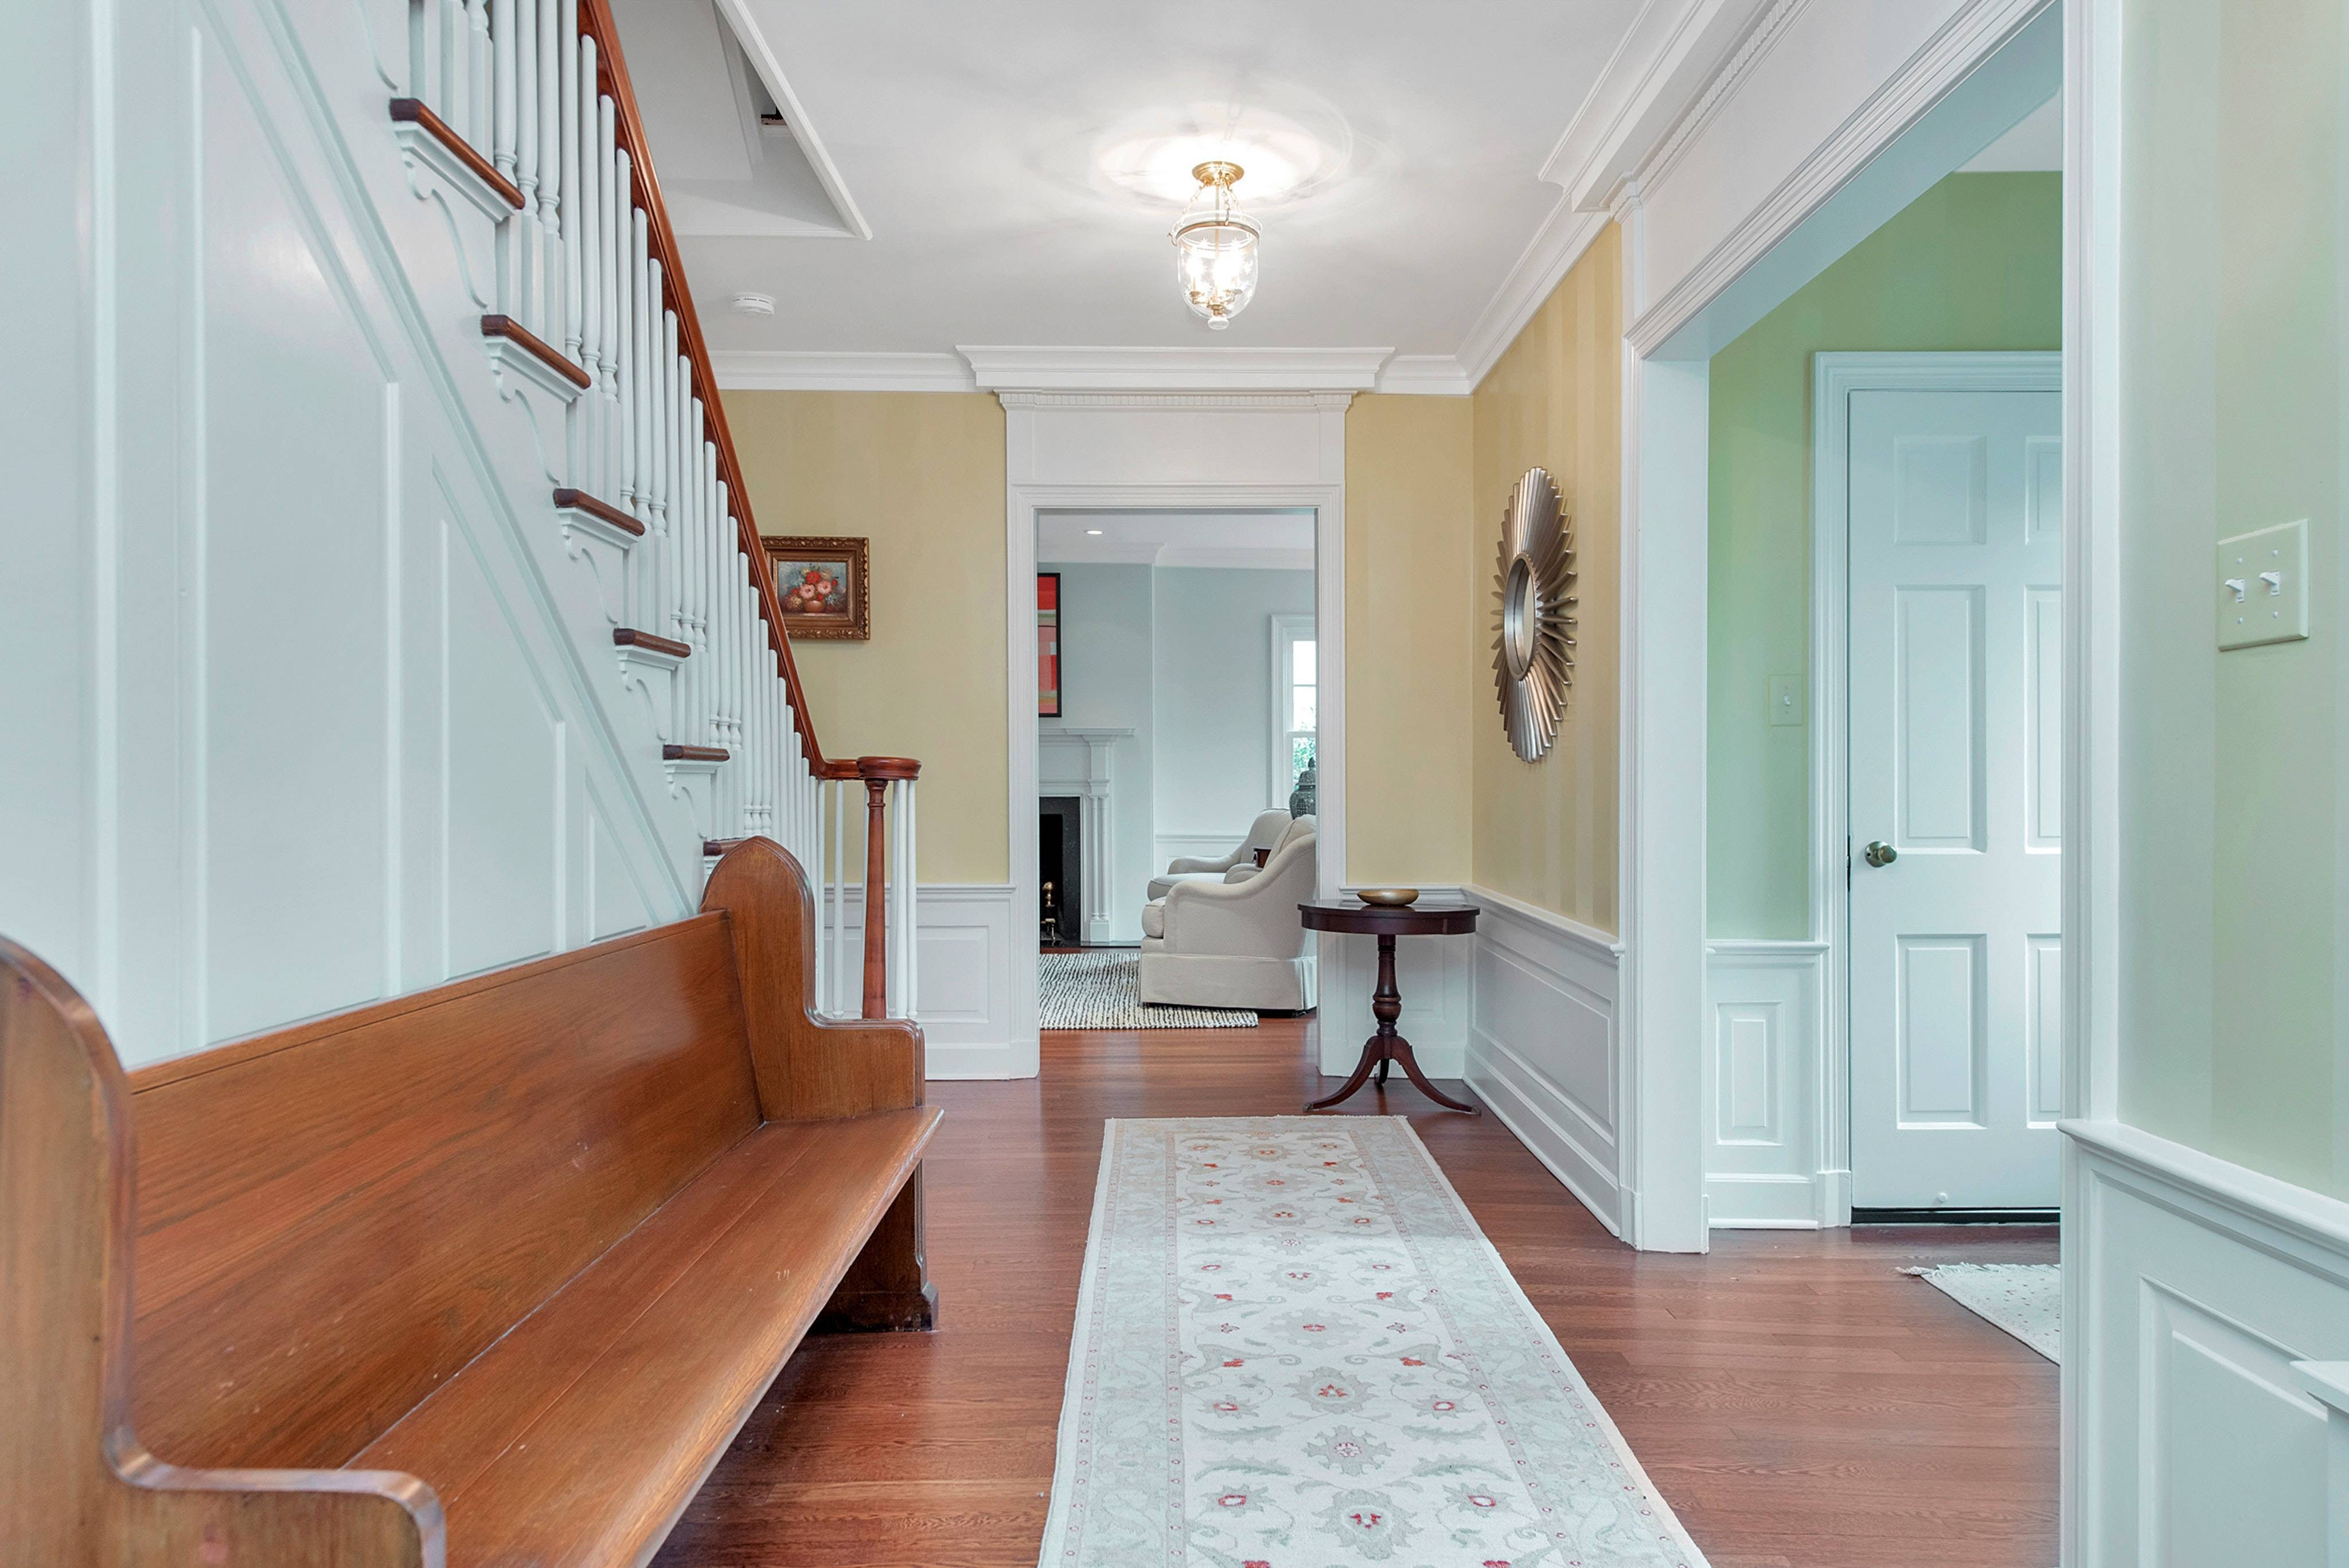 2 Plymouth Road, Summit, NJ: $1,650,000 - TAPinto